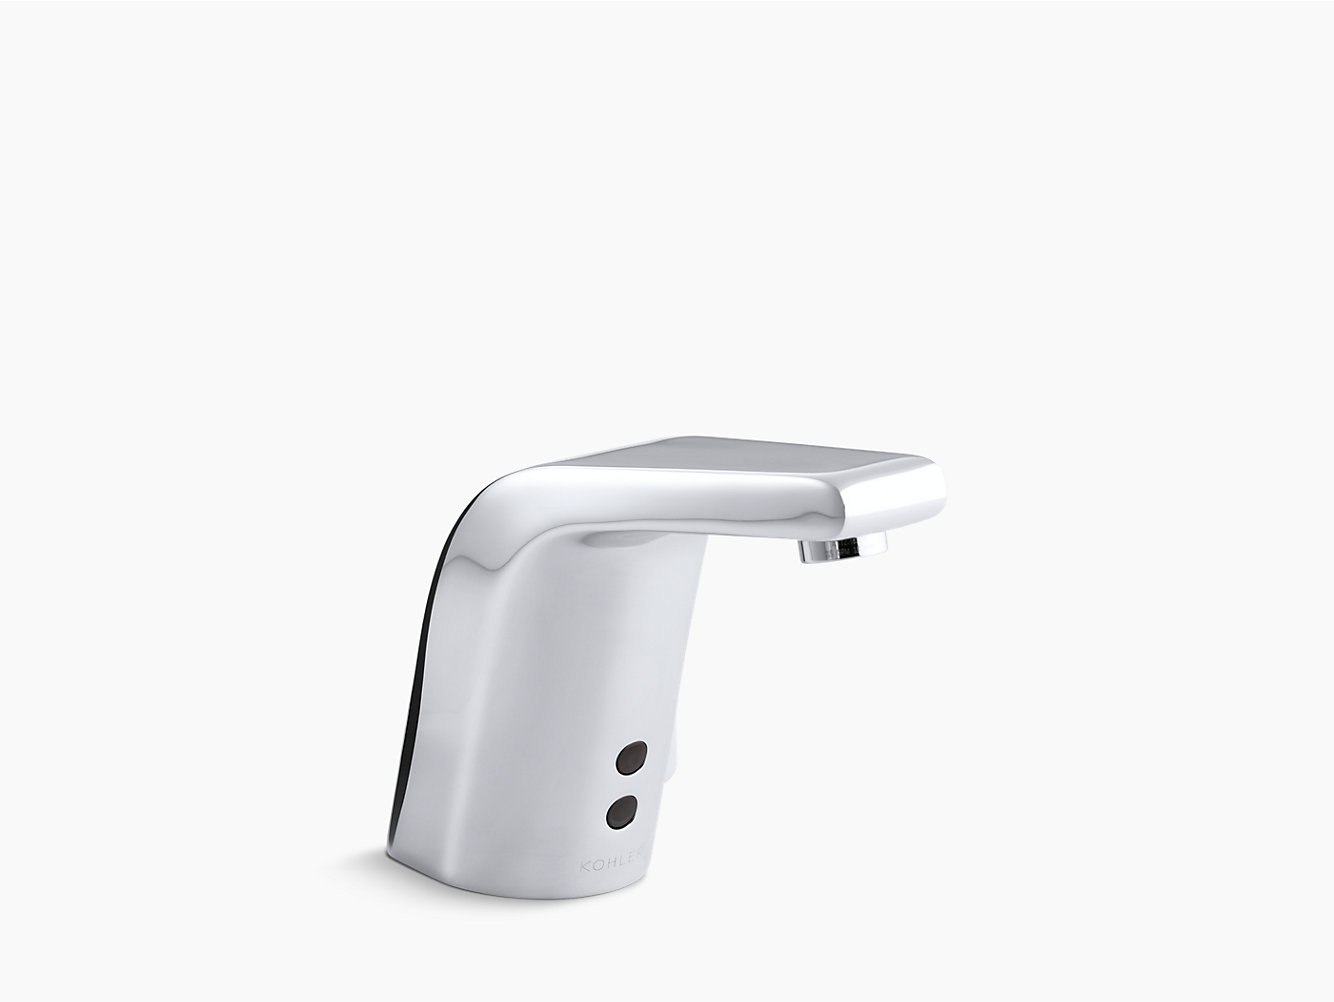 KOHLER | 7515 | Sculpted single-hole Touchless hybrid energy cell-powered commercial bathroom sink faucet with Insight technology, temperature mixer and ...